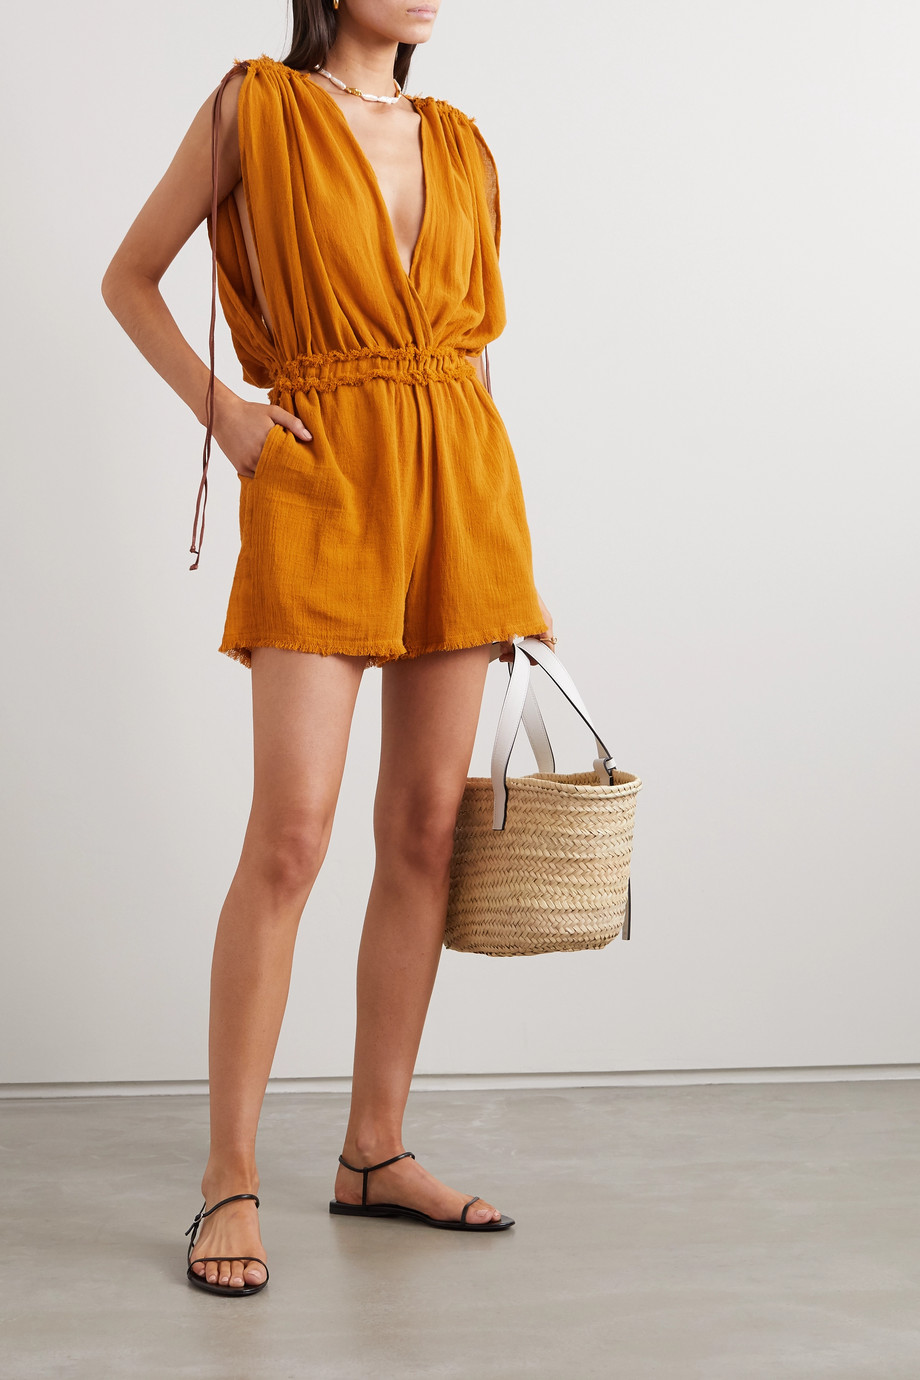 Caravana + NET SUSTAIN Kaayche leather-trimmed frayed cotton-gauze playsuit